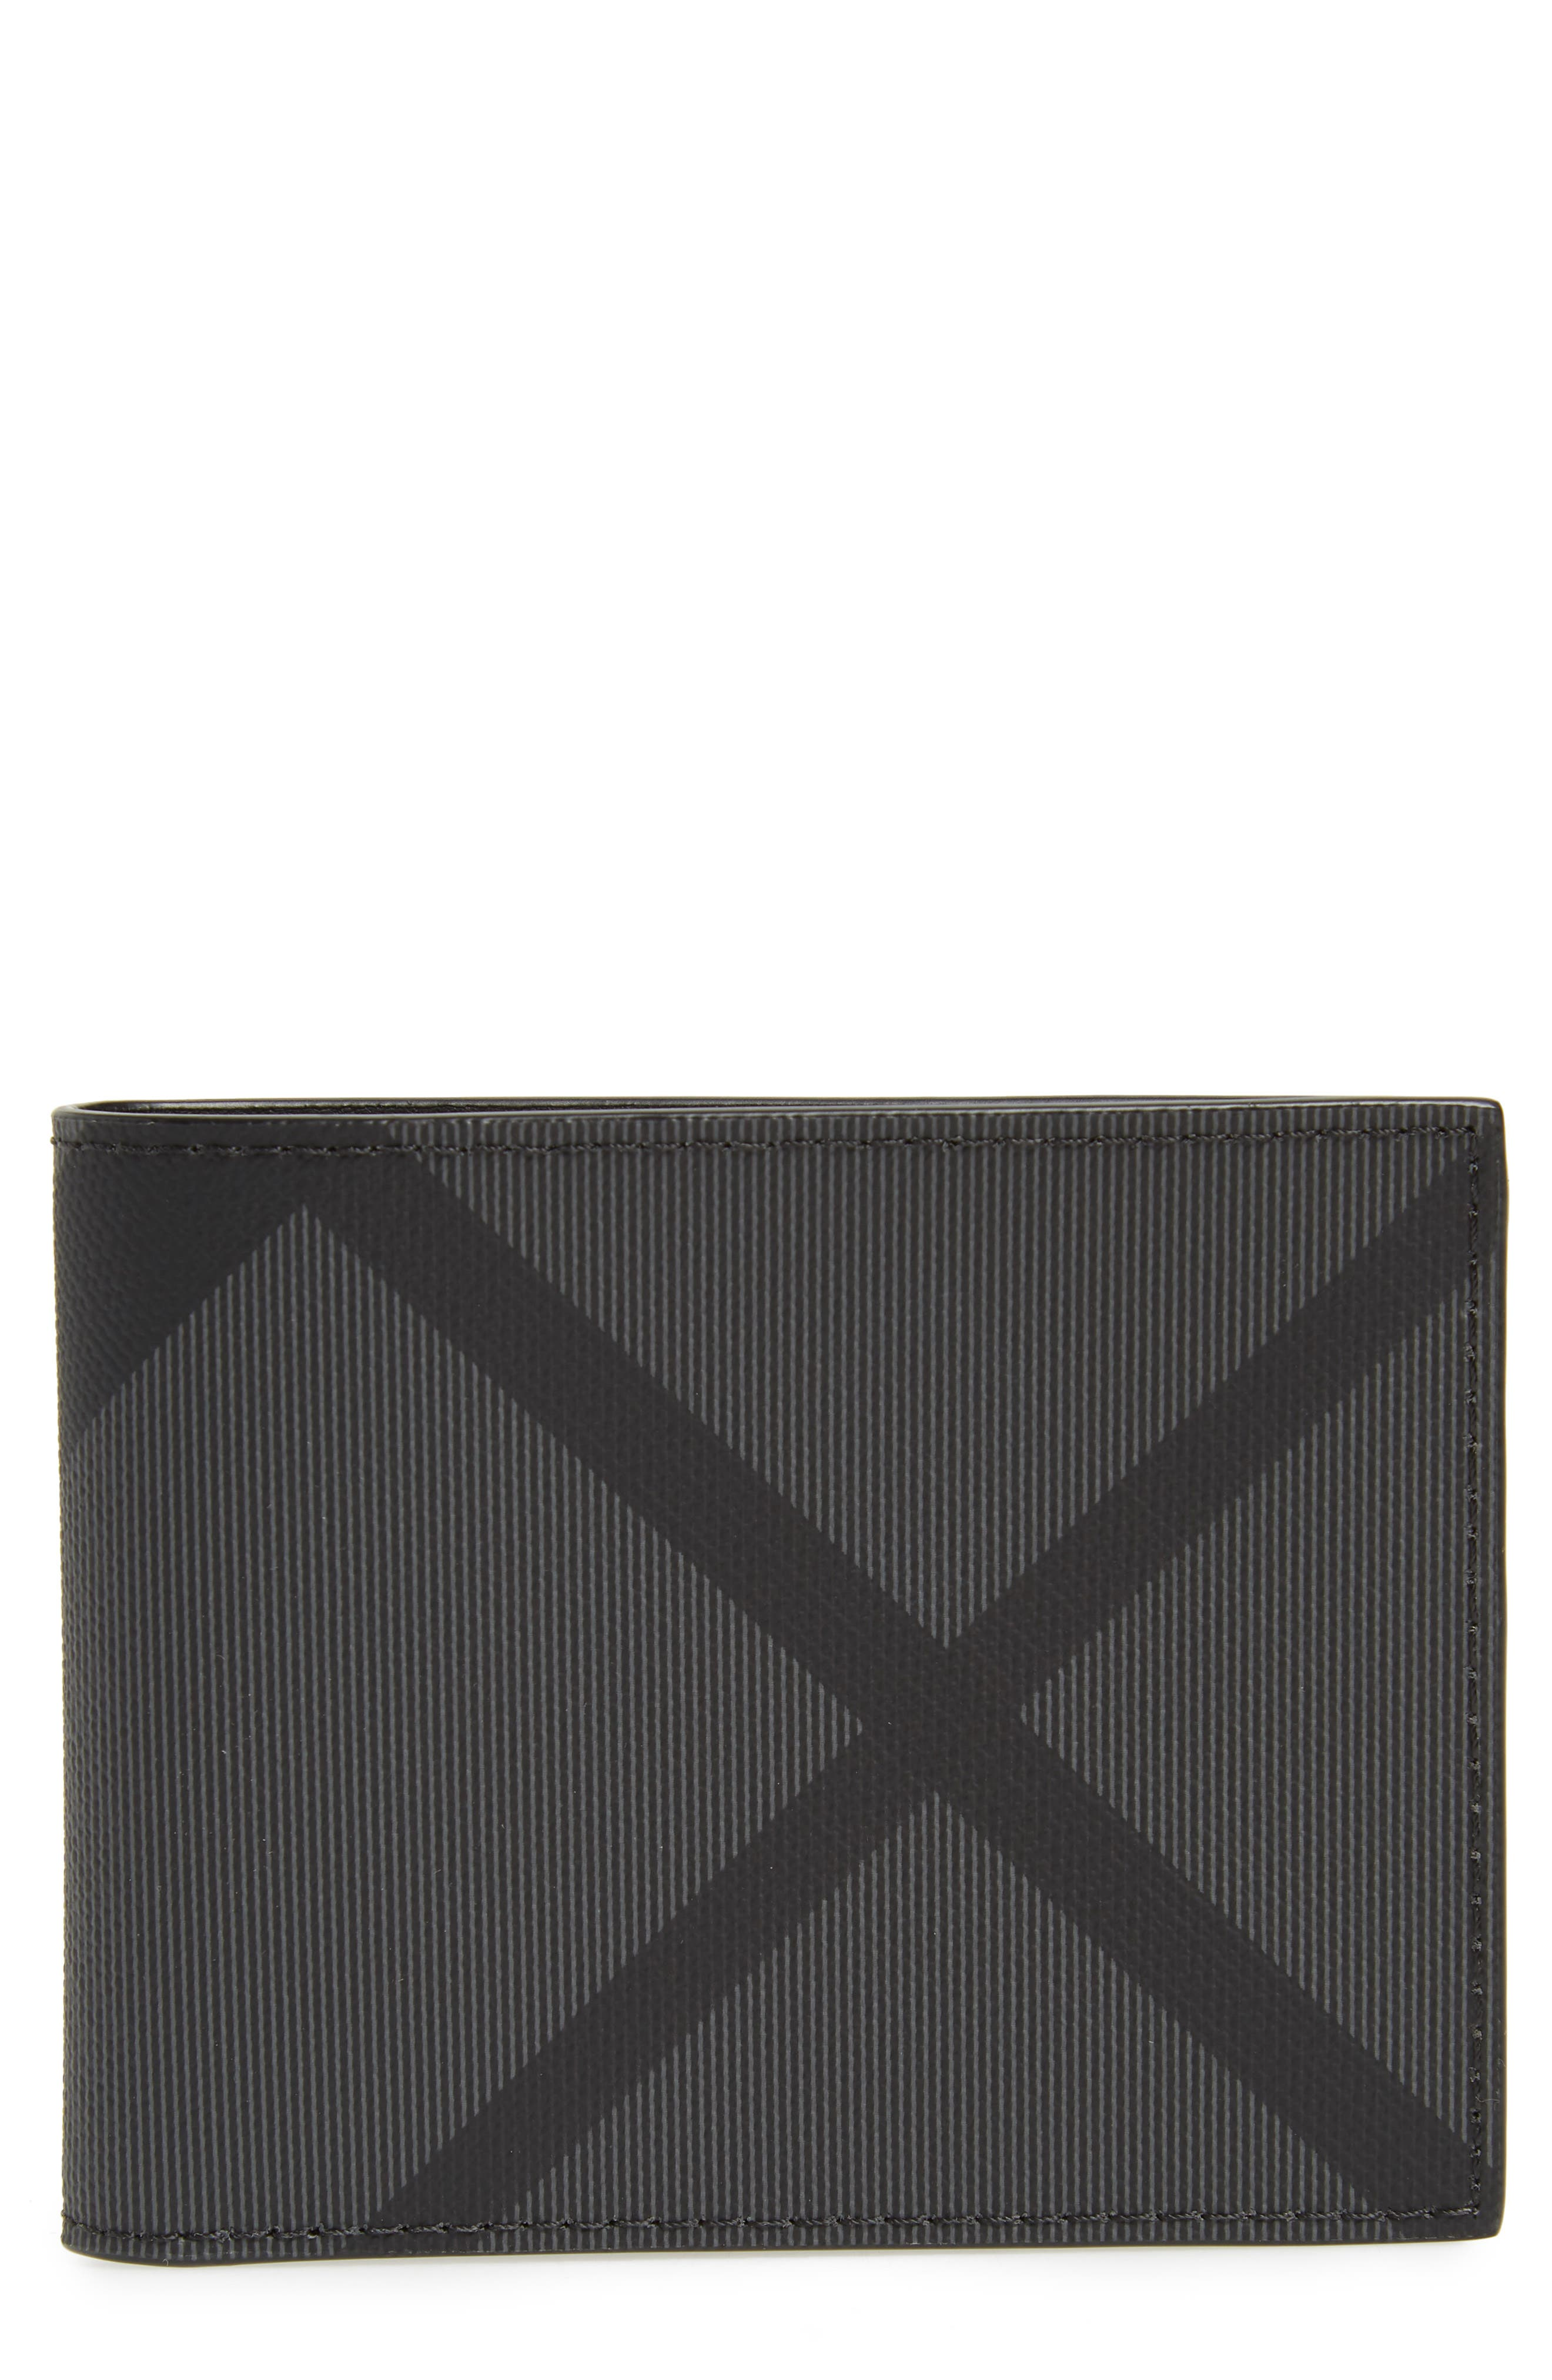 Check Wallet,                             Main thumbnail 1, color,                             CHARCOAL/ BLACK